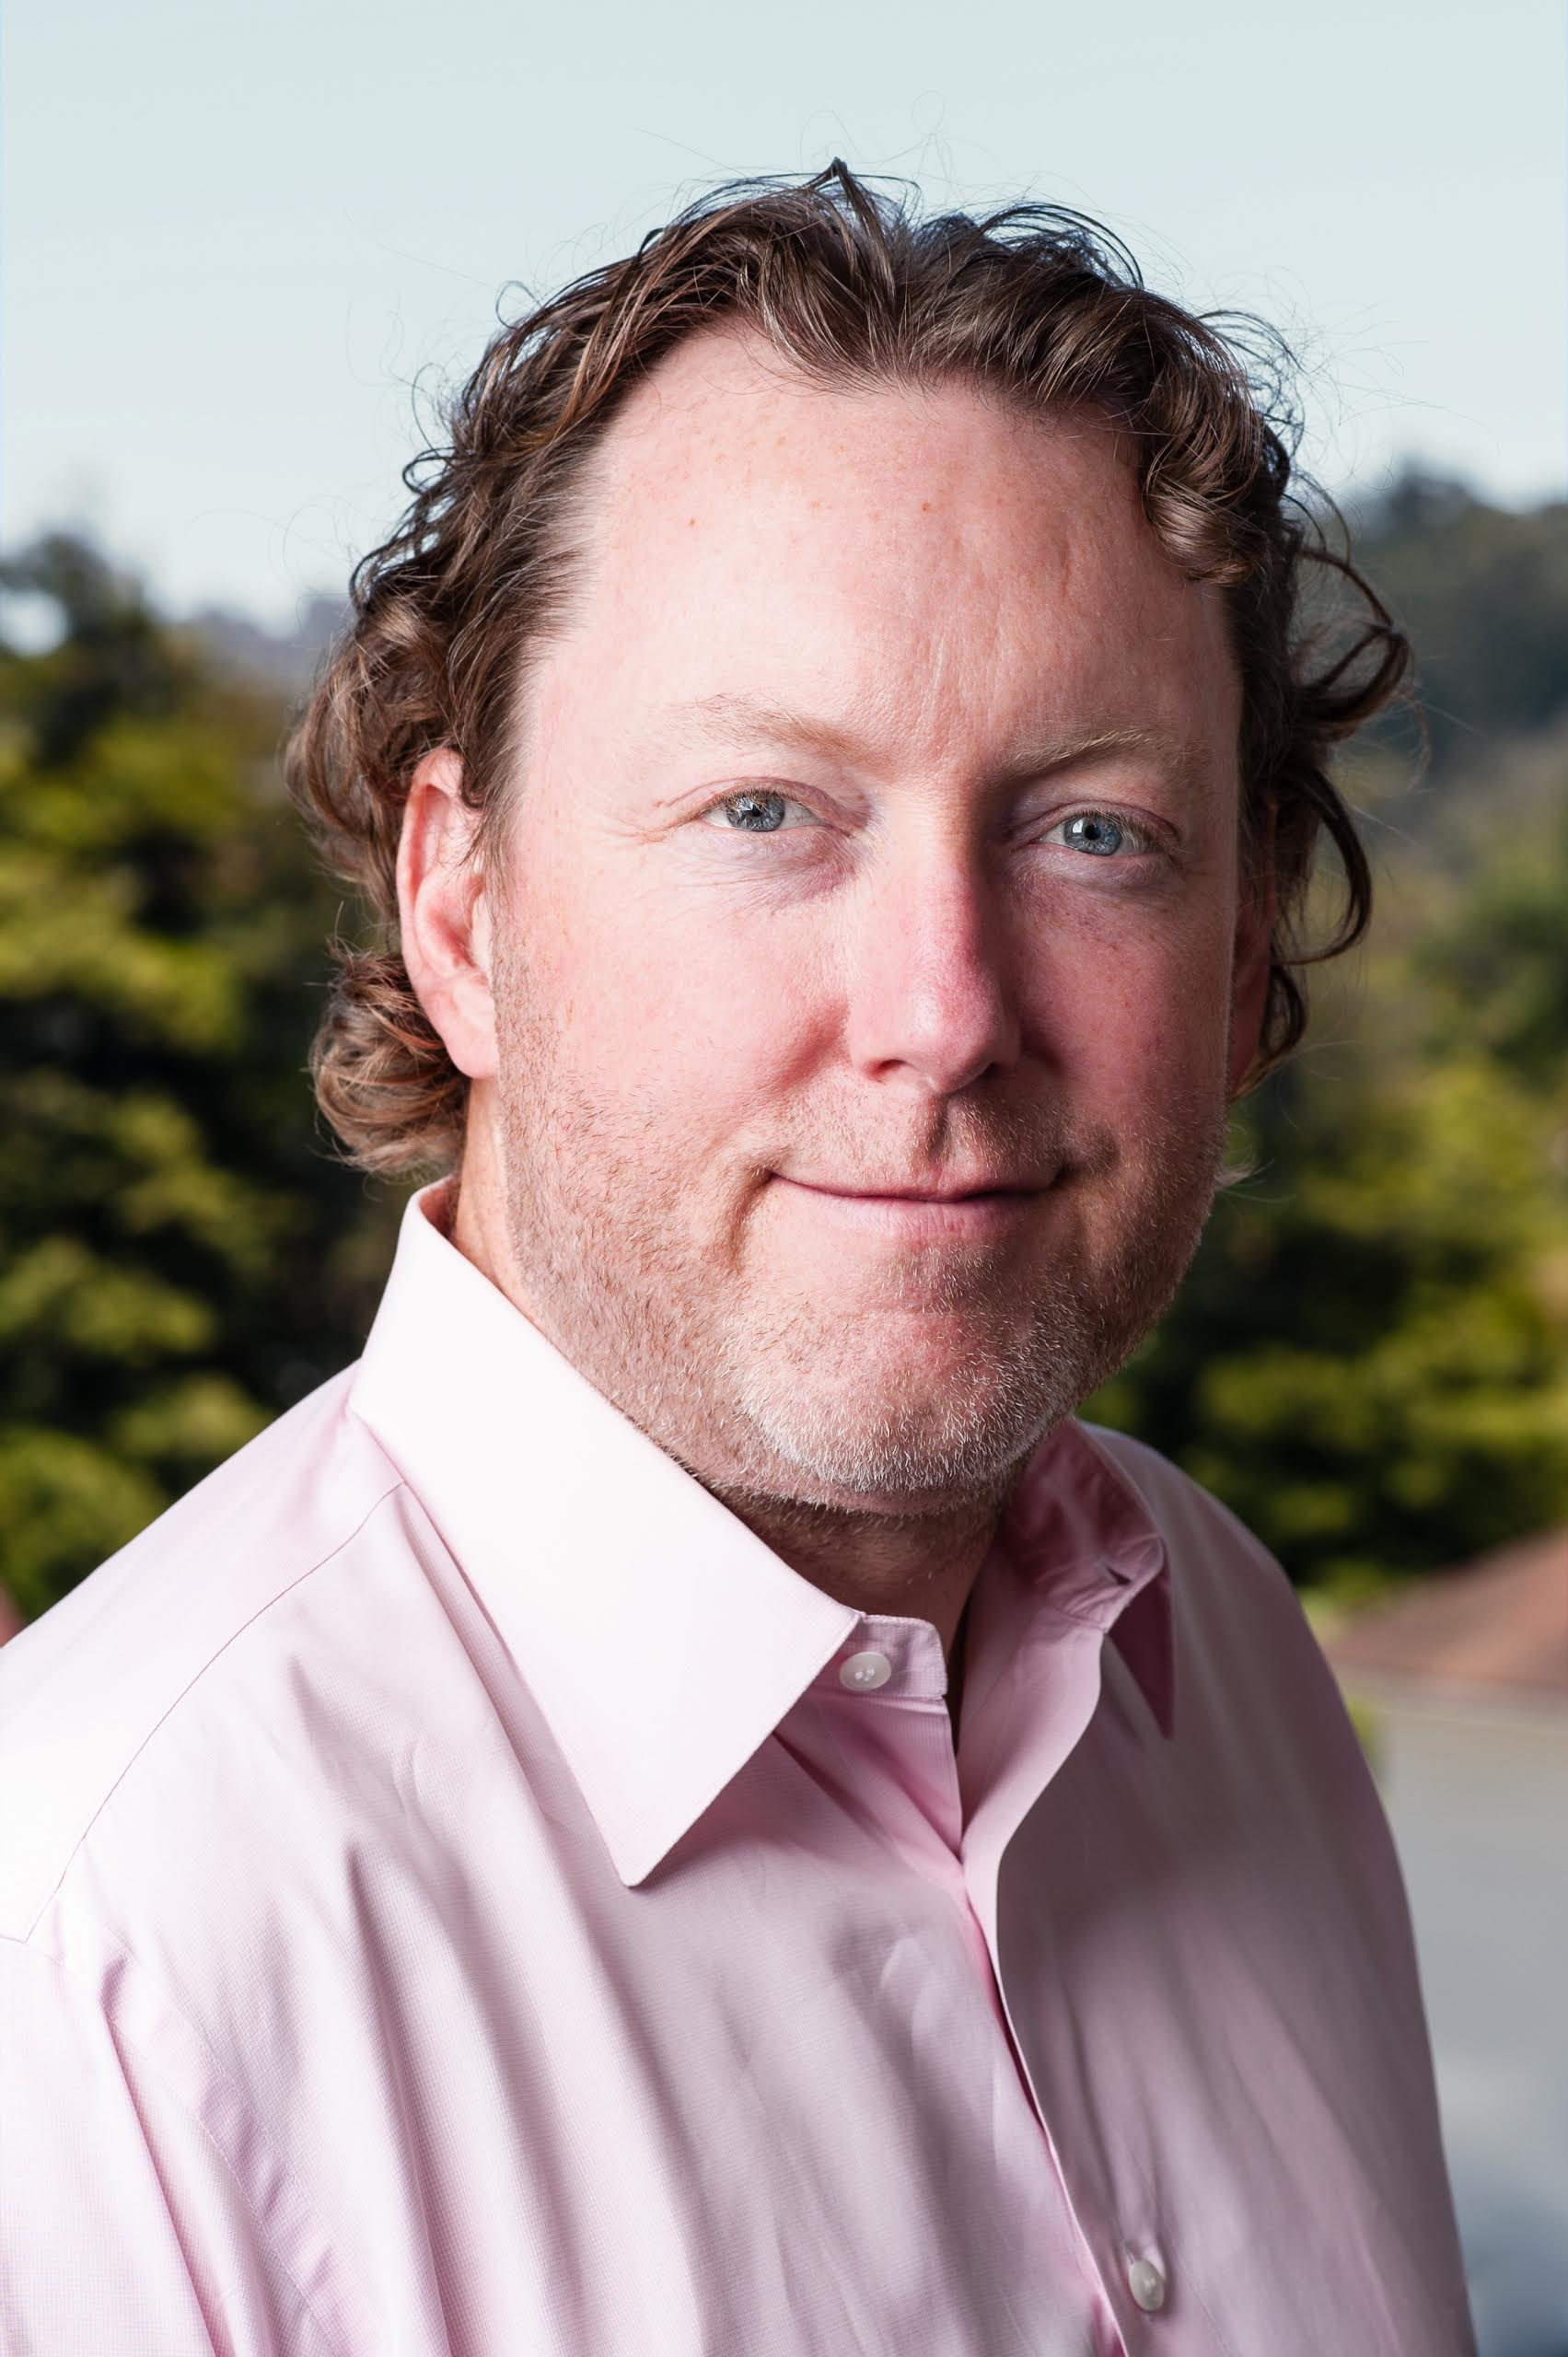 Mike Cagney, CEO of SoFi